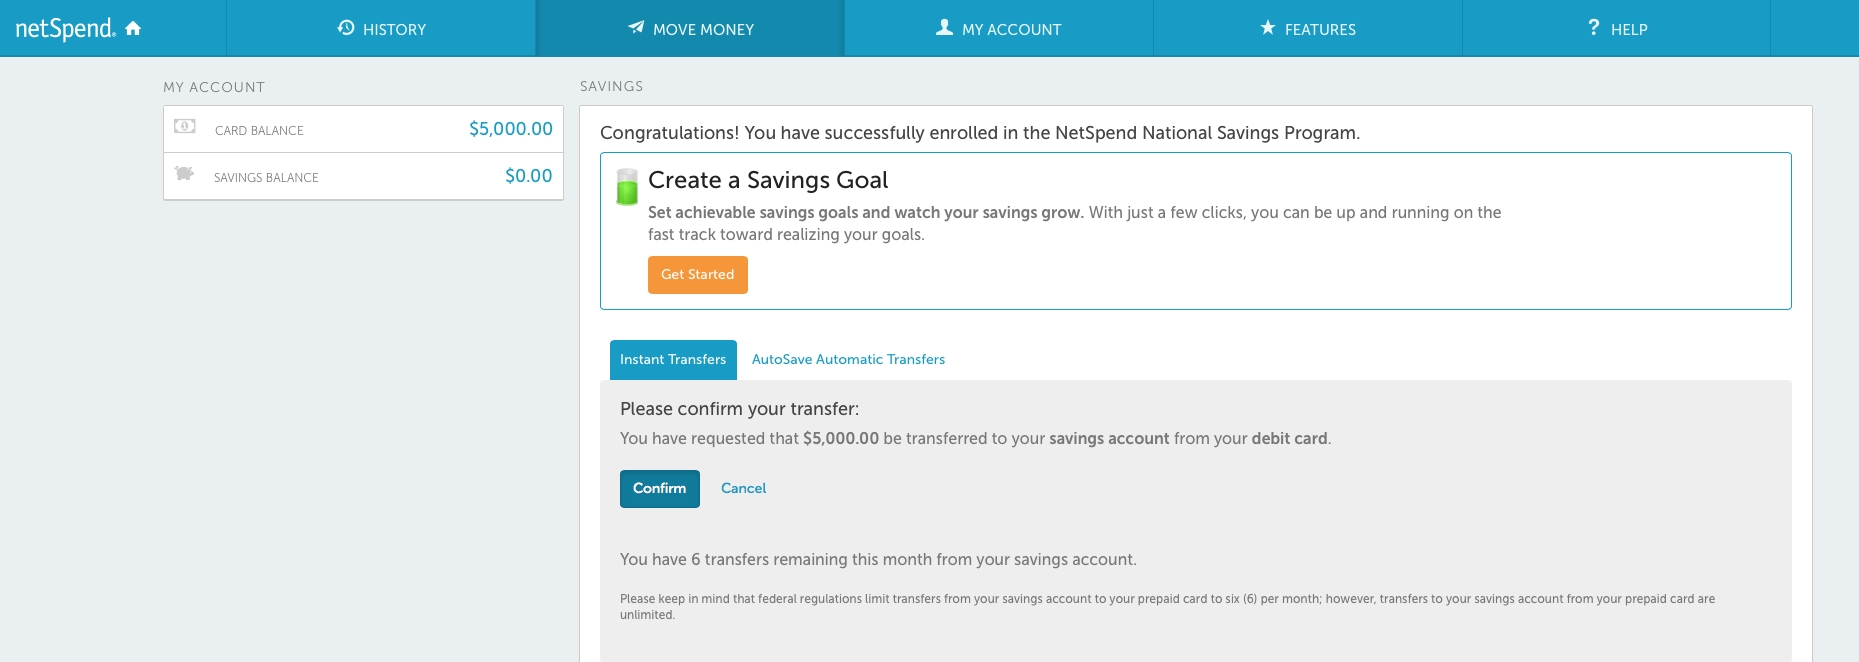 Netspend Card 5 Apy Savings Account Review My Money Blog